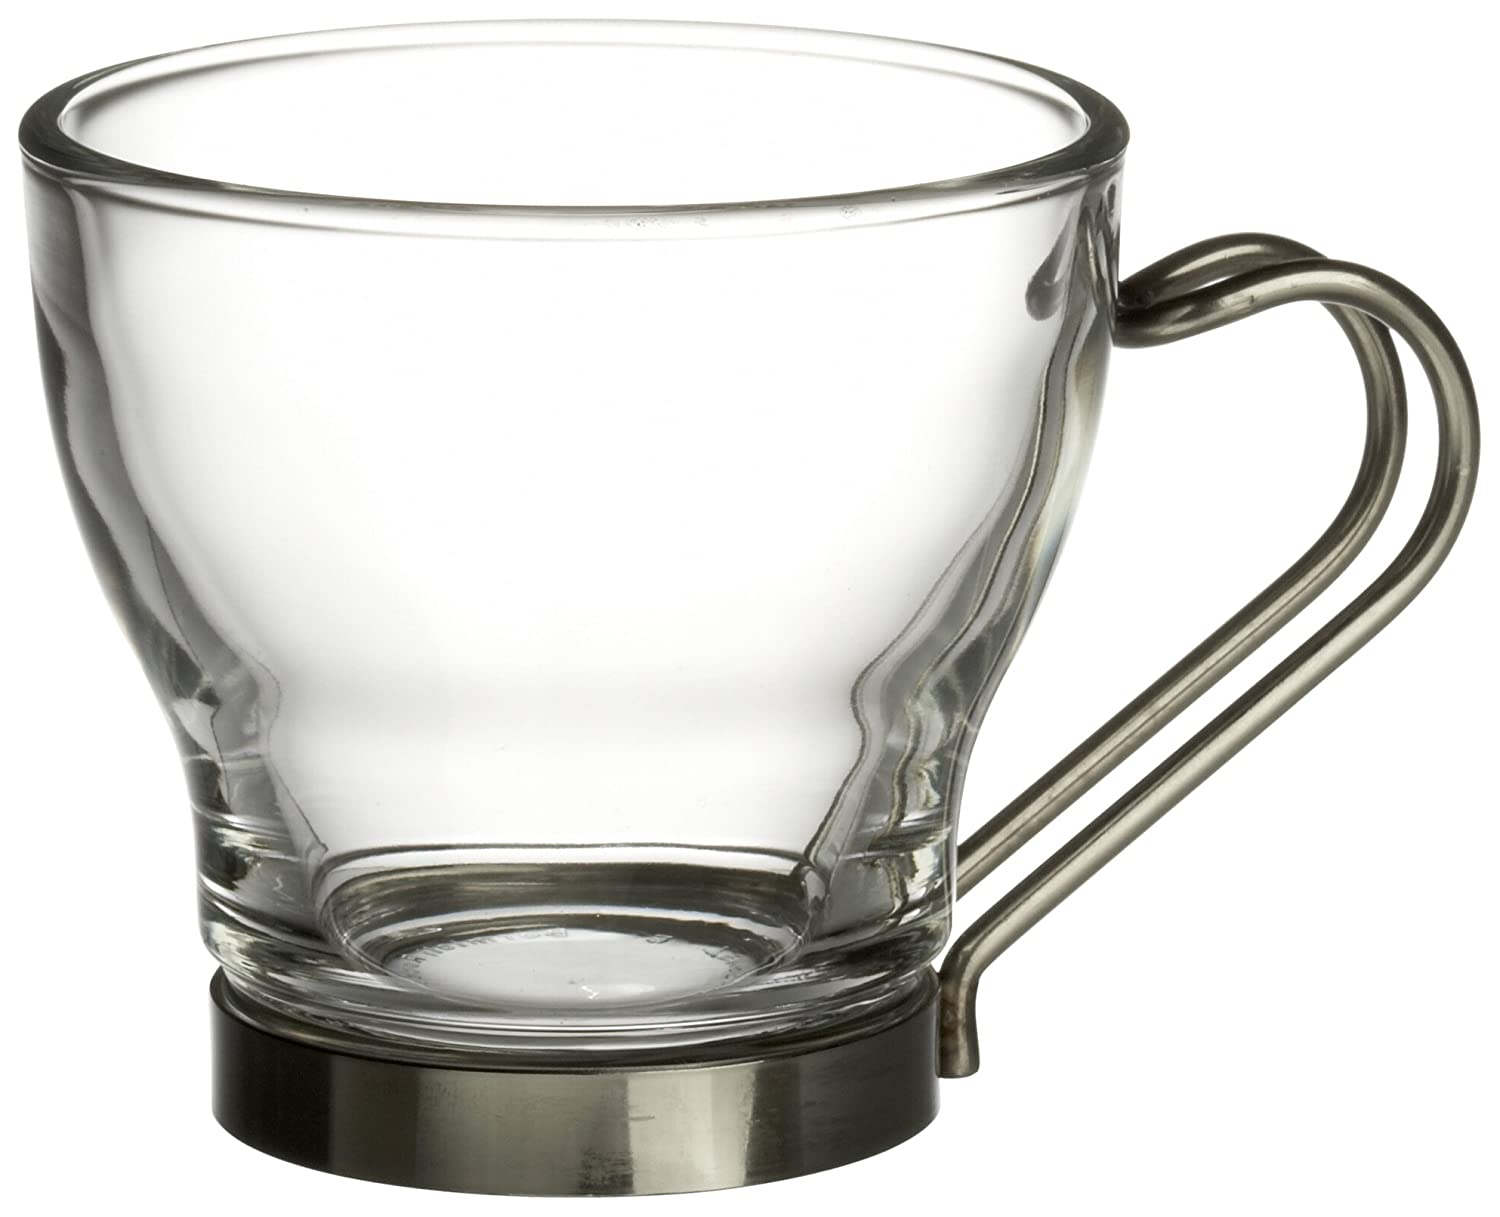 Merveilleux Amazon.com | Bormioli Rocco Verdi Espresso Cup With Stainless Steel Handle,  Set Of 4, Gift Boxed: Coffee Cups: Mixed Drinkware Sets